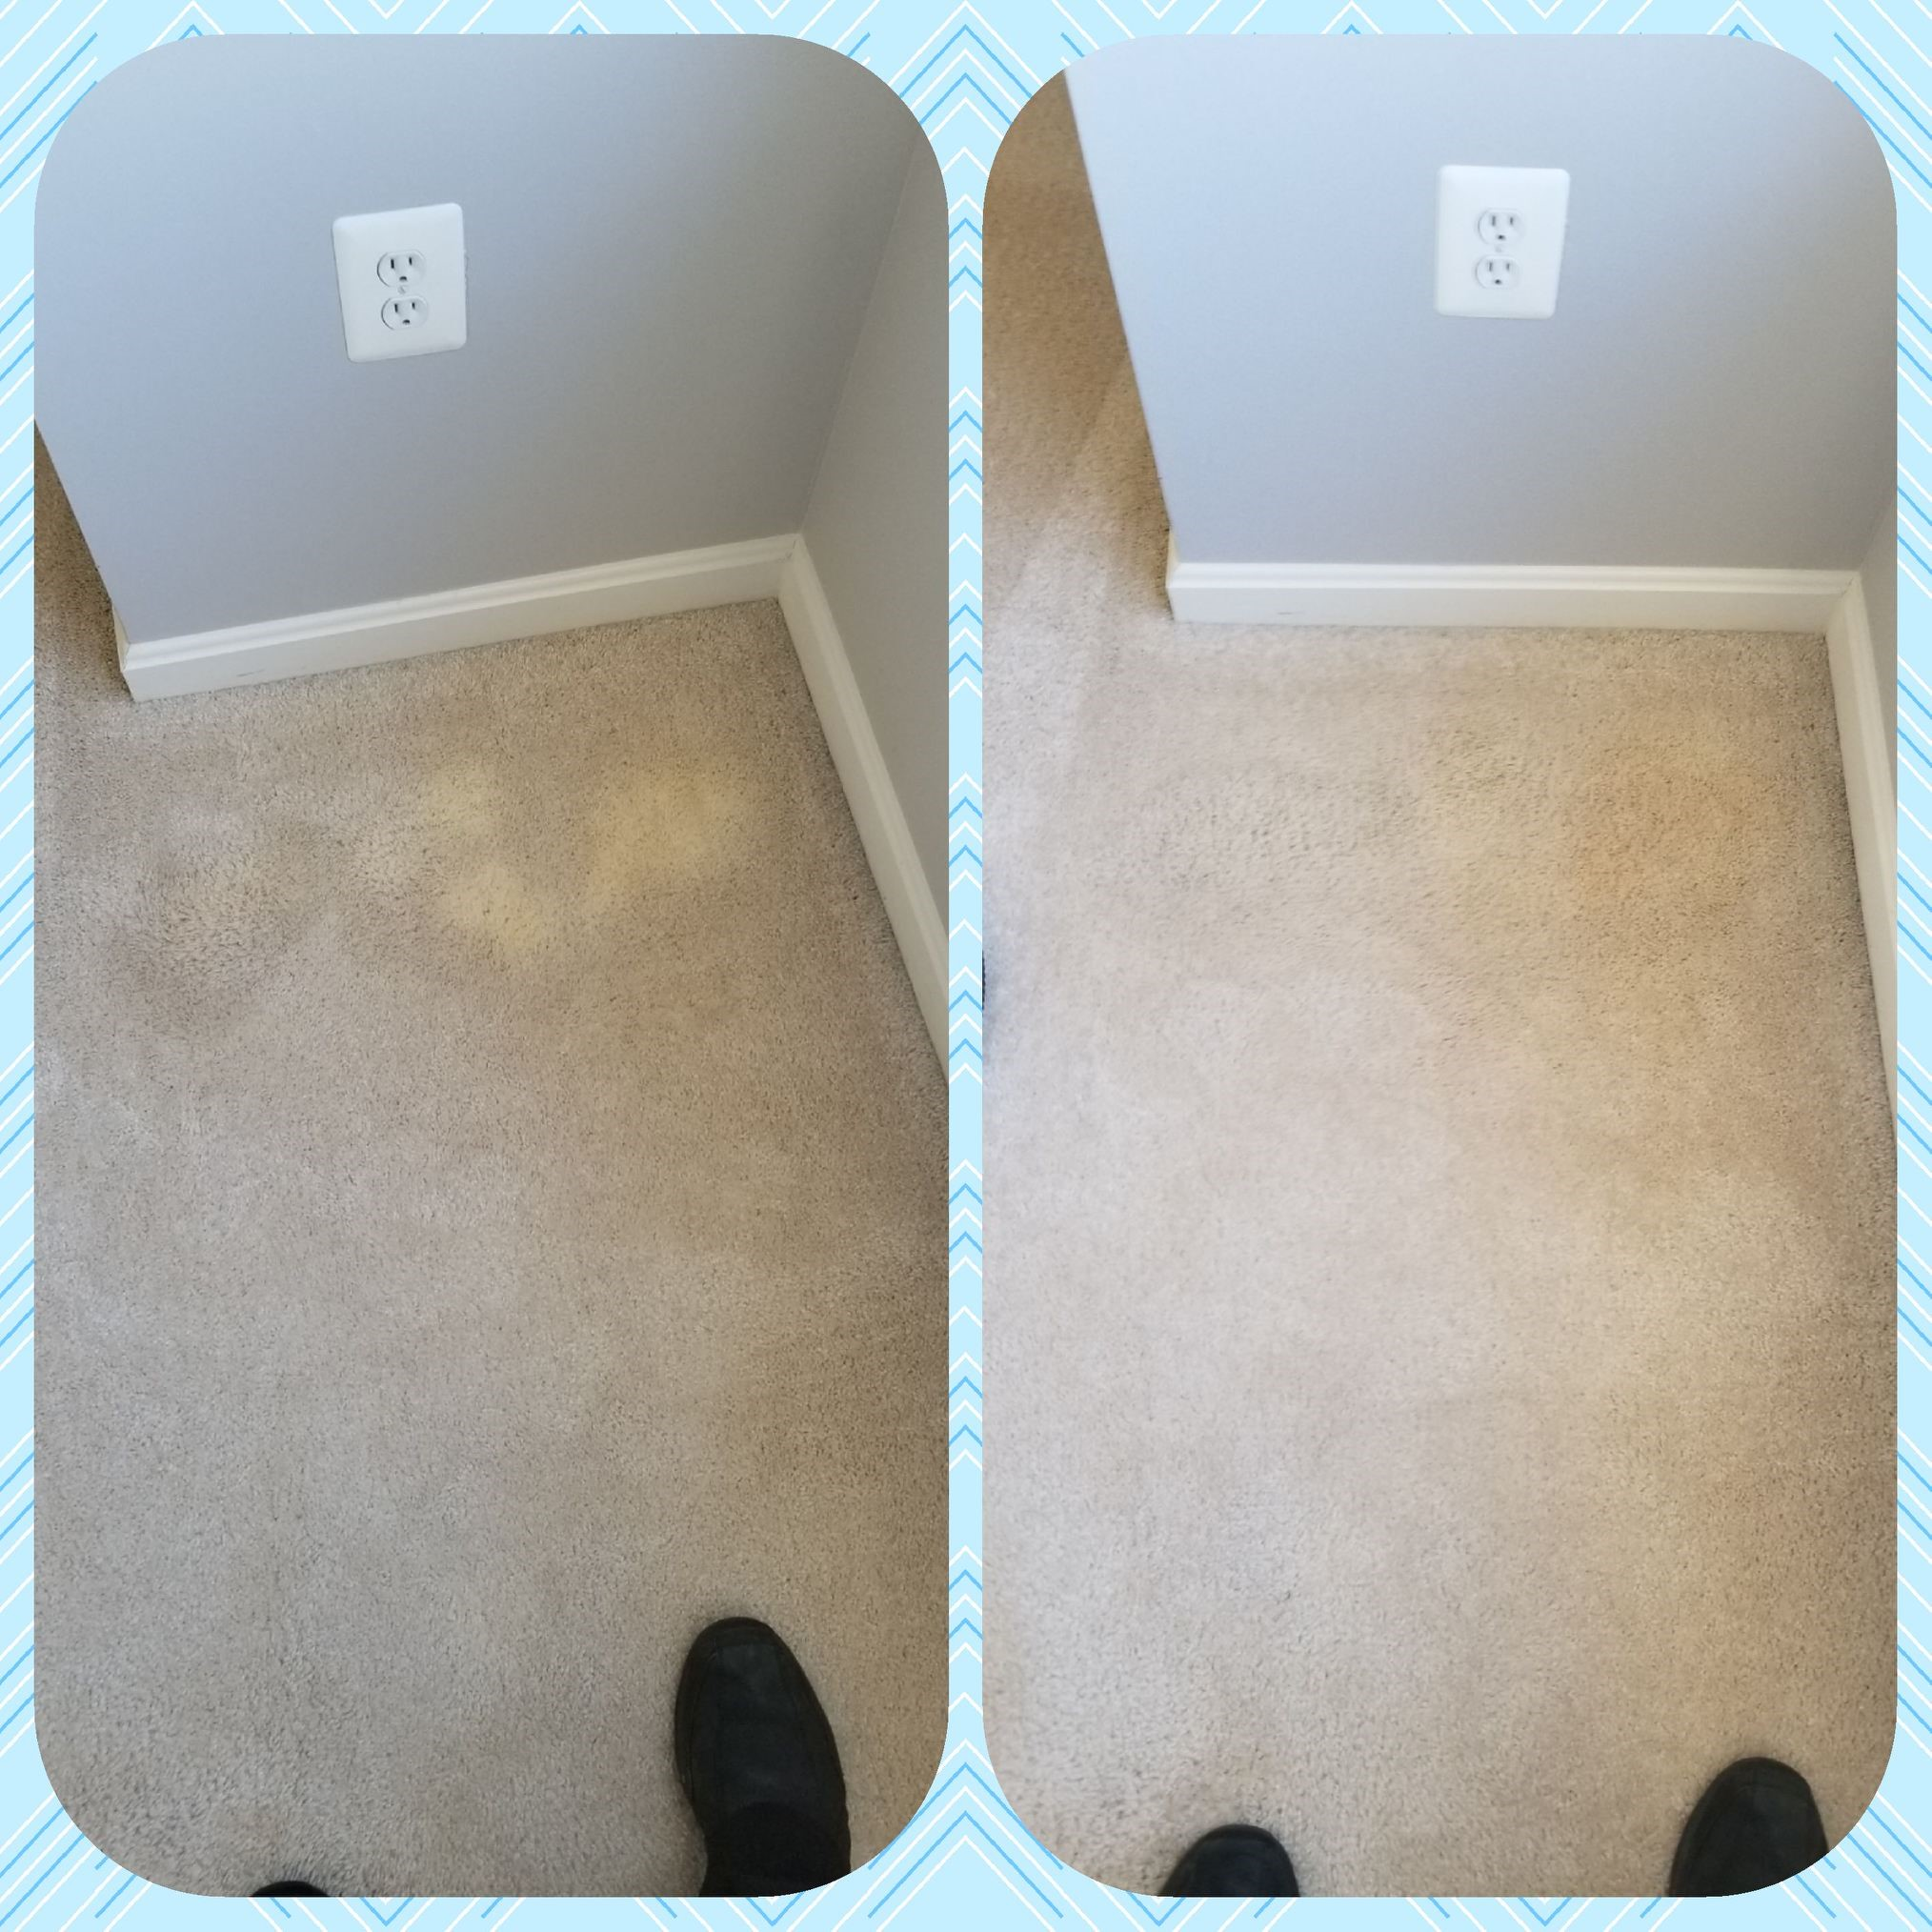 Bleach Spot Repair in Arlington, VA